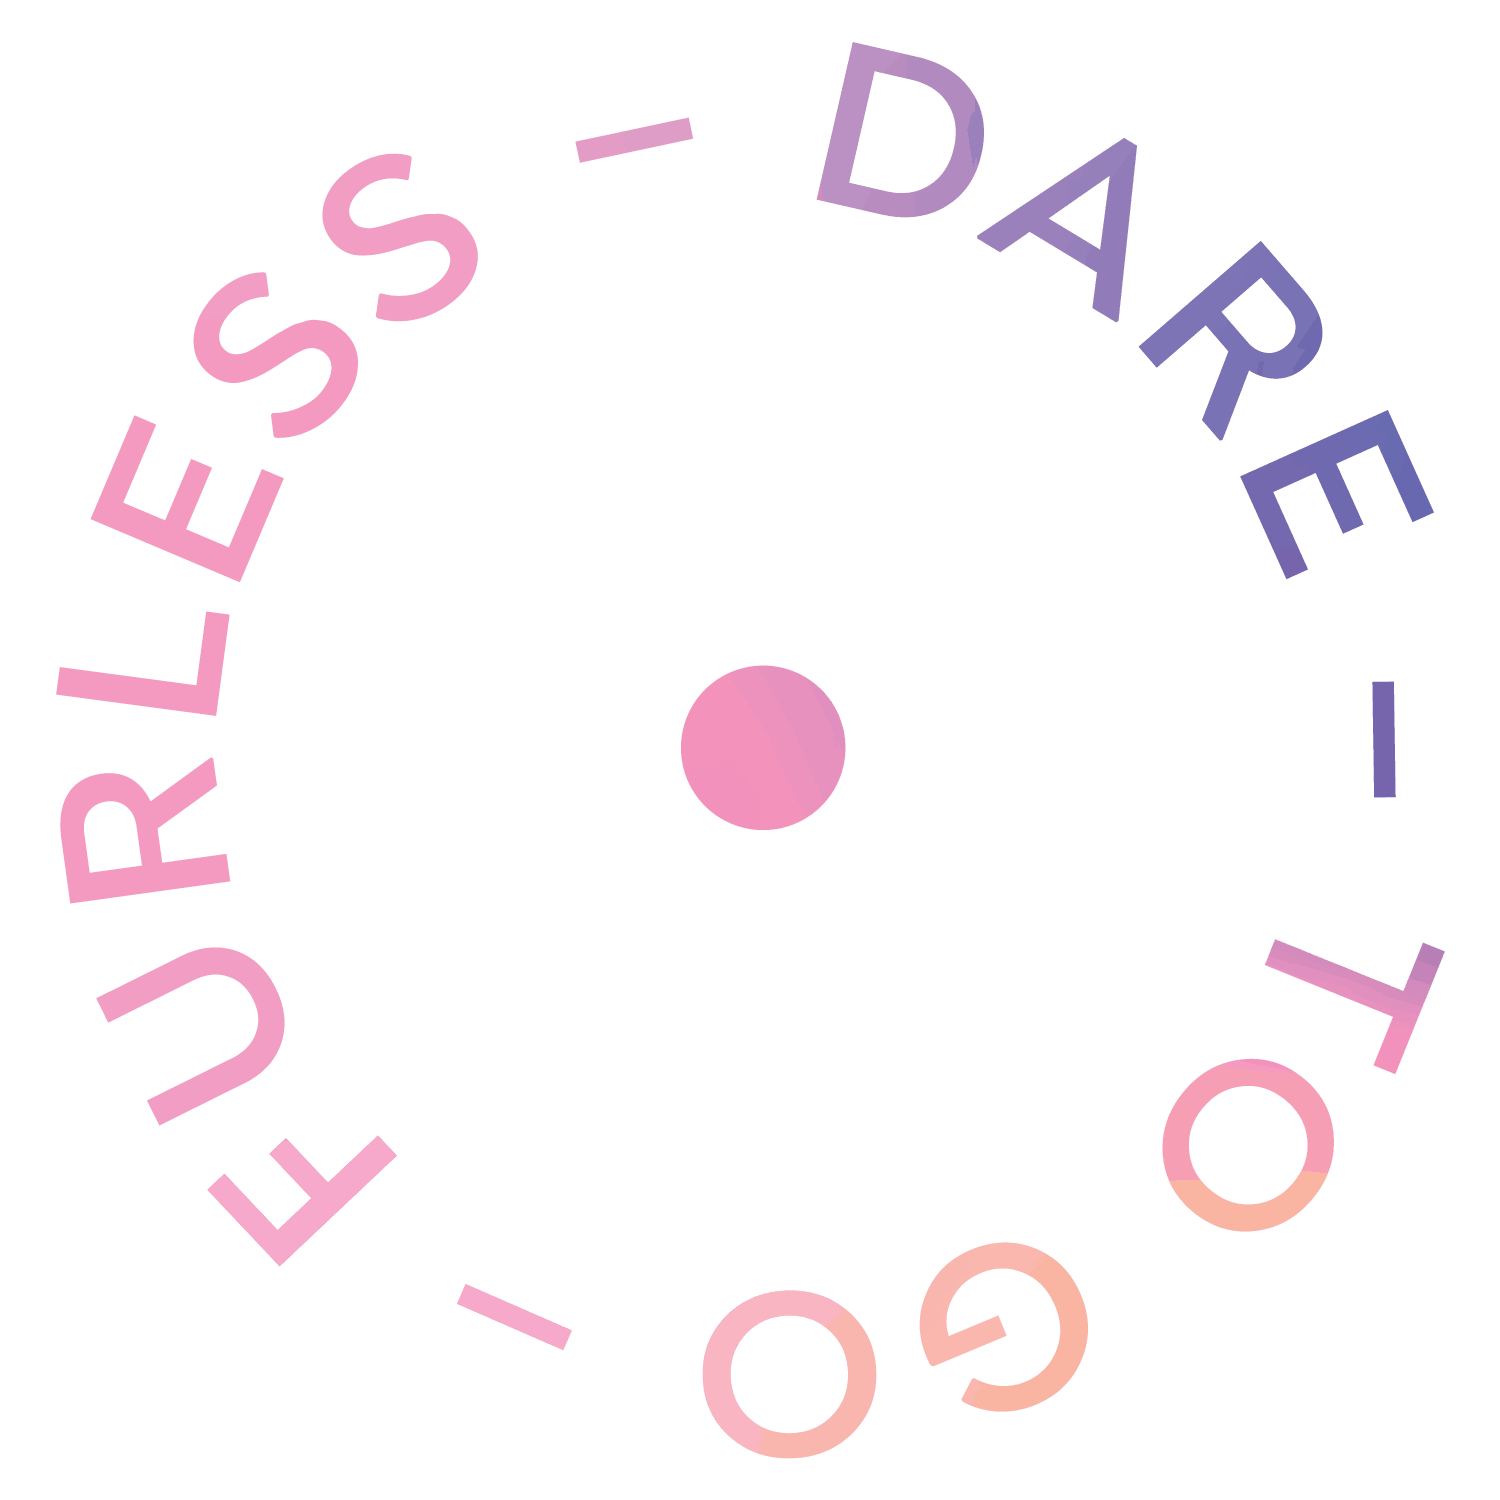 Dare to go - Furless Permenant Dubai 6